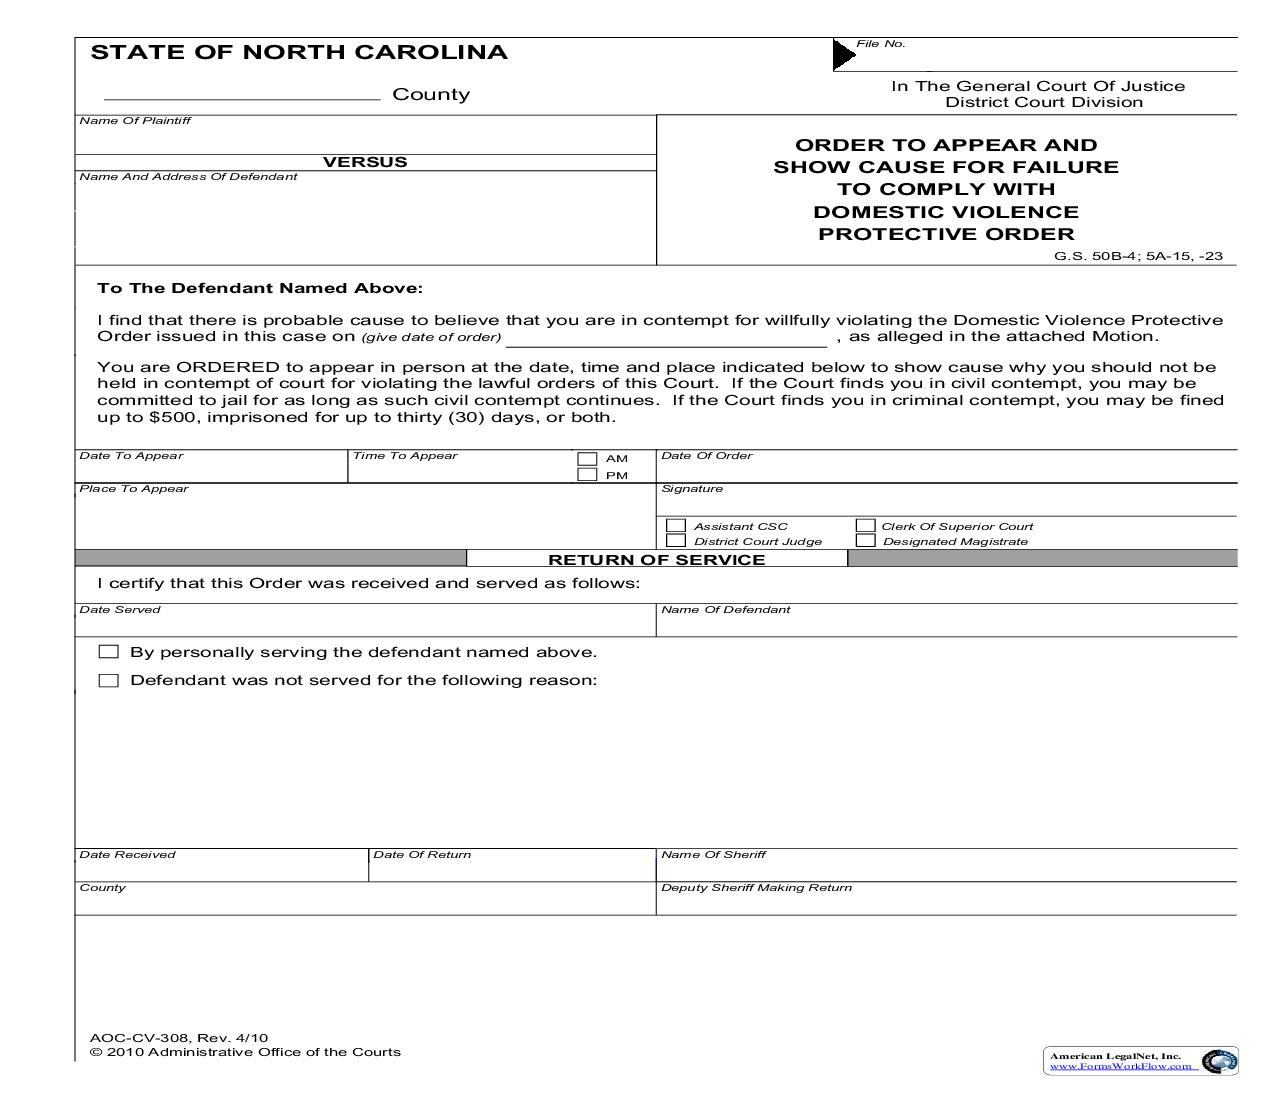 Order To Appear And Show Cause For Failure To Comply With Domestic Violence Protective Order {CV-308} | Pdf Fpdf Doc Docx | North Carolina